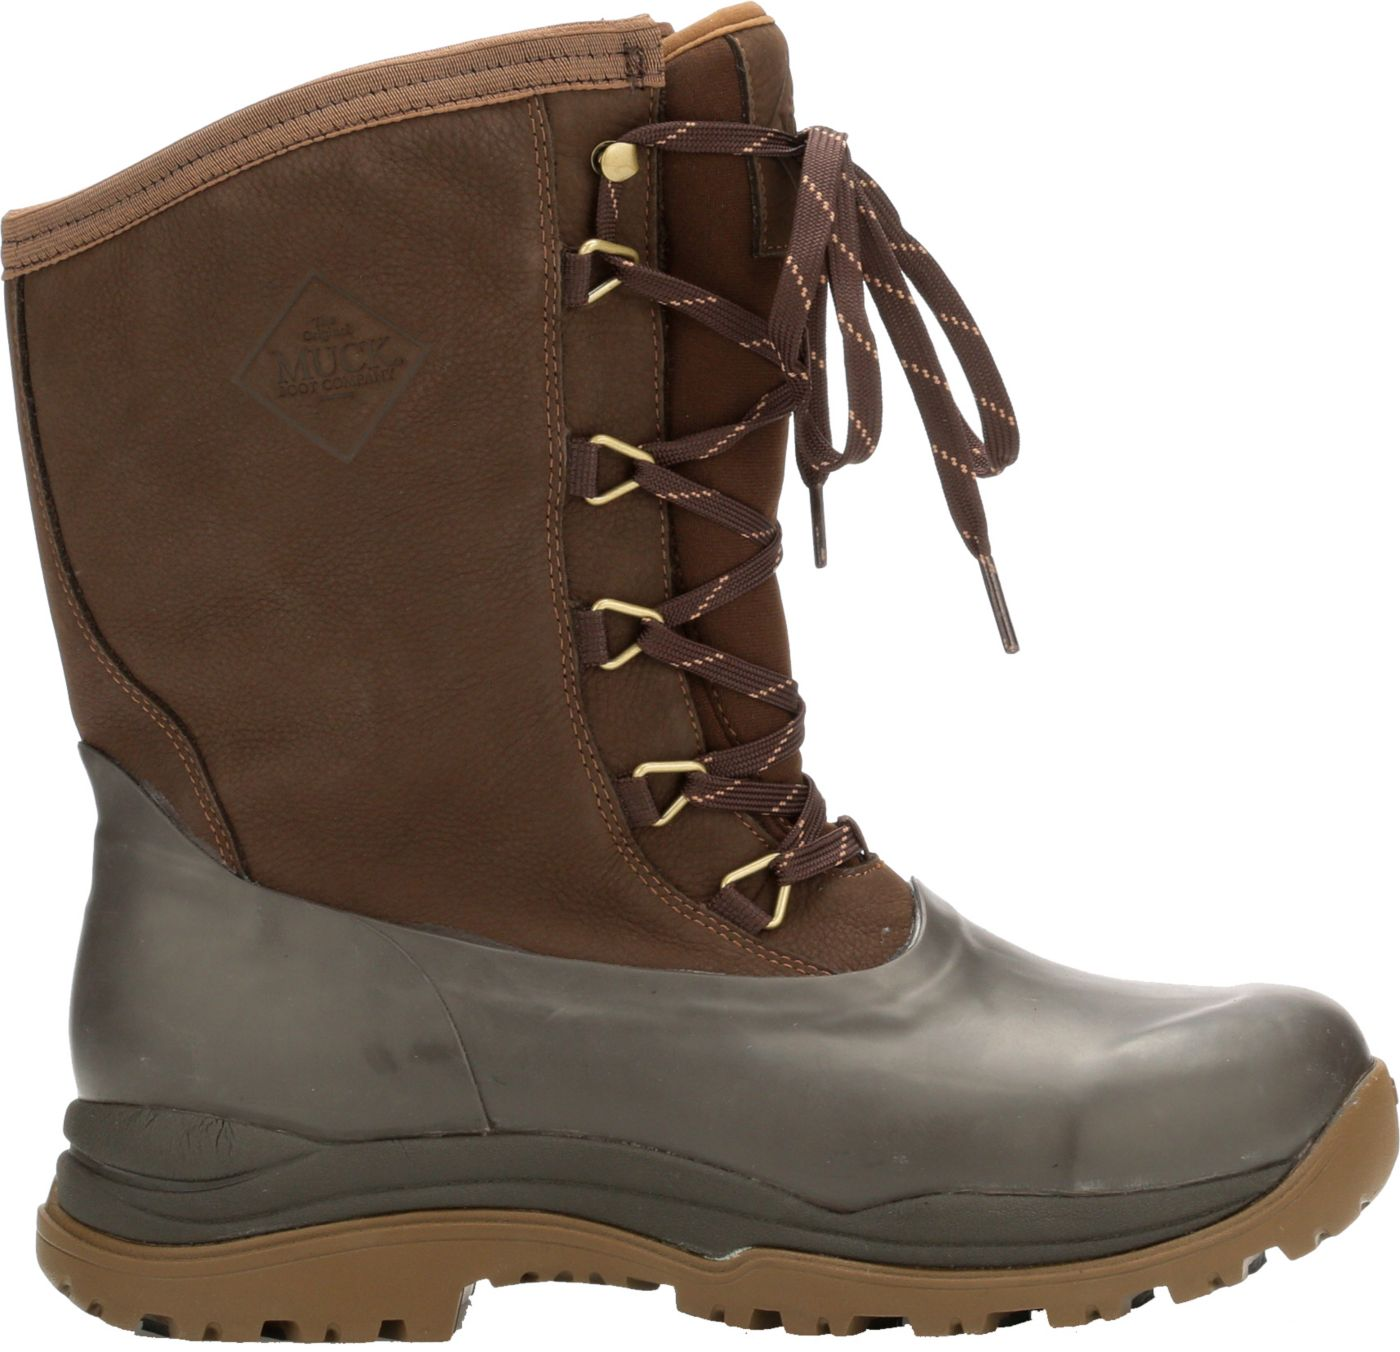 Muck Boots Men's Arctic Outpost Lace Mid Waterproof Winter Boots